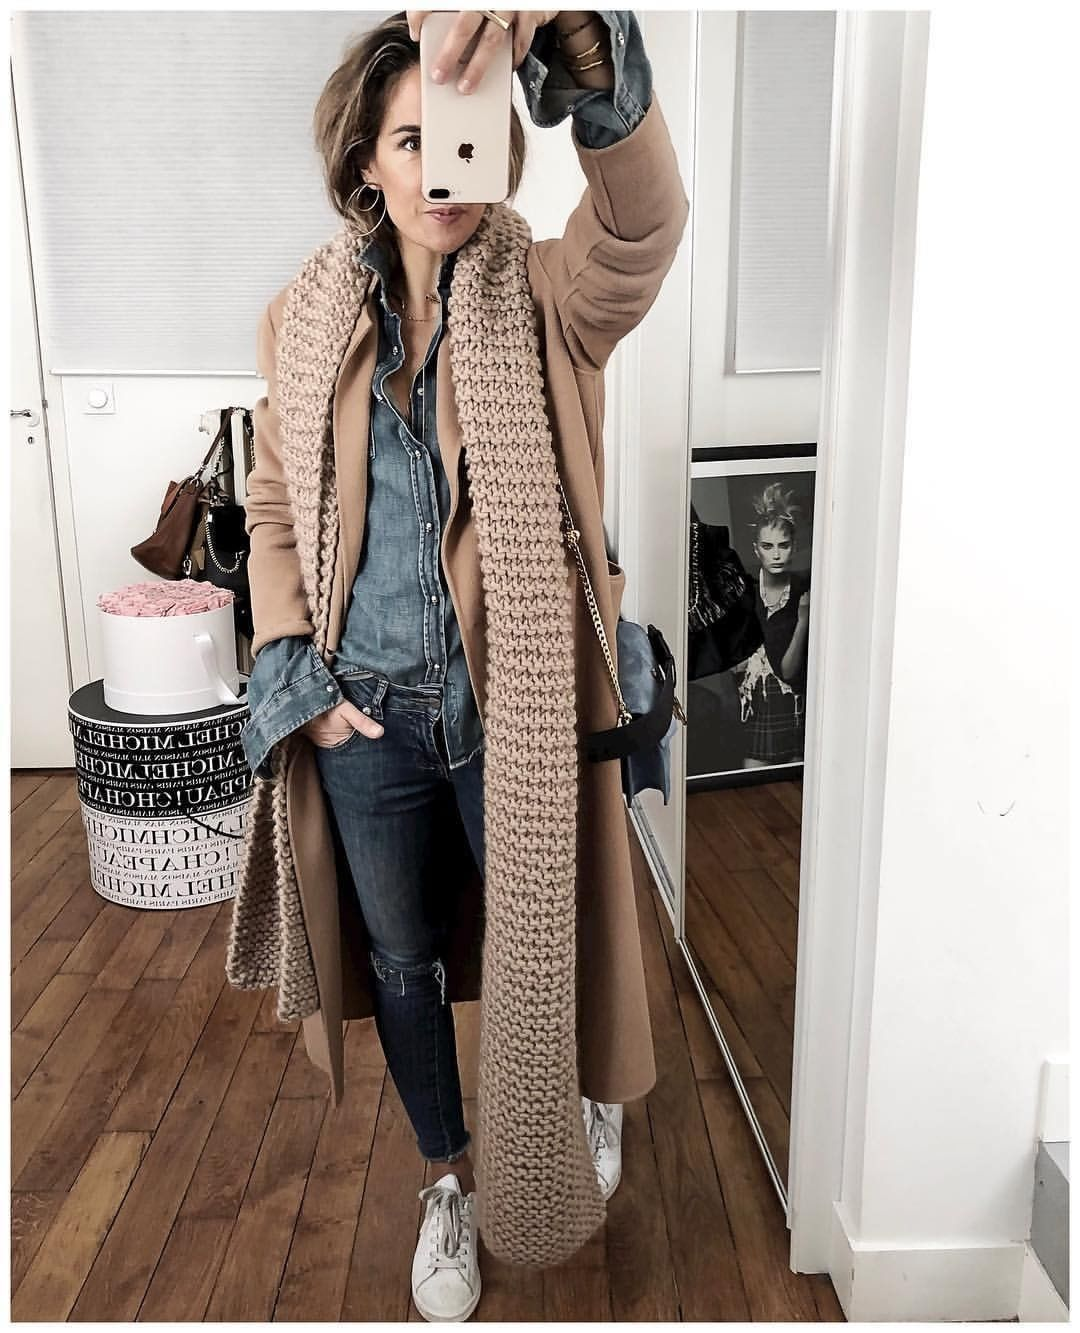 Dashing Denim Button Shirt And Jeans With Caramel Warm Coat And Knit Scarf